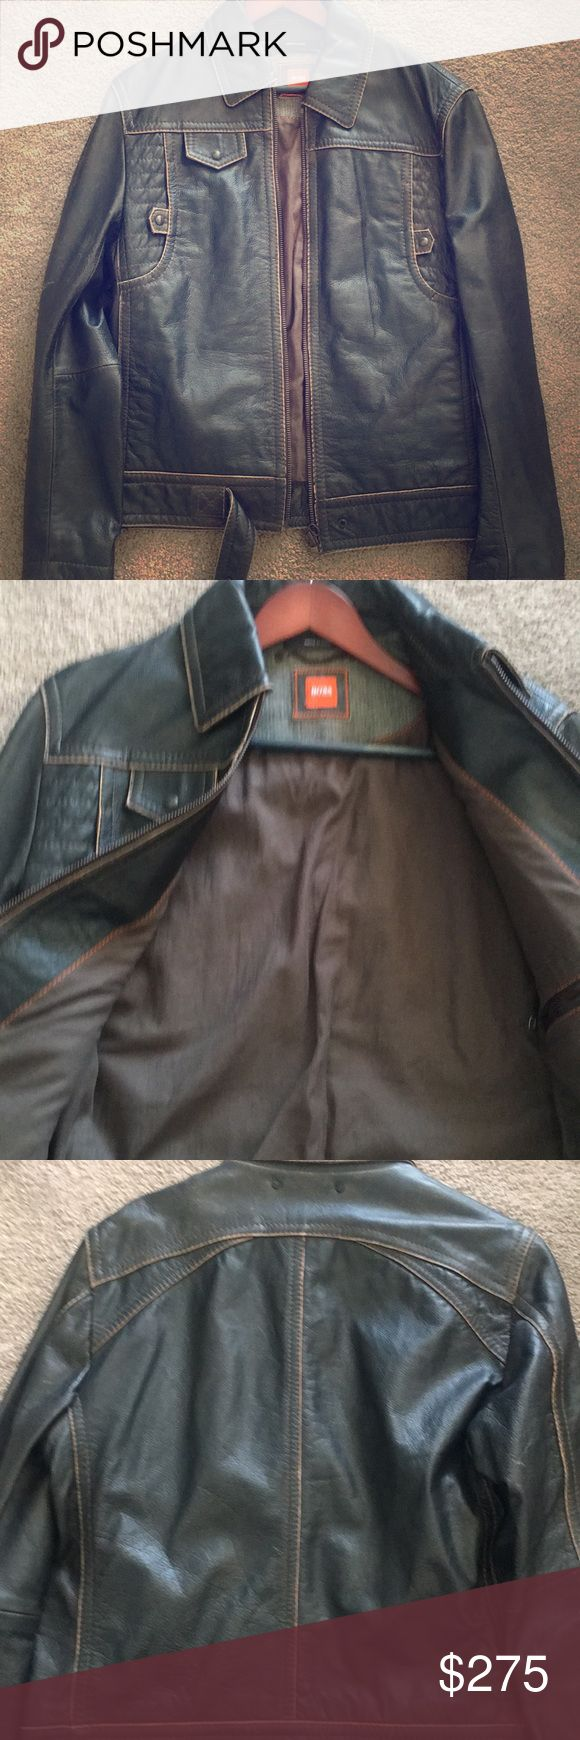 Hugo Boss Leather Jacket Hugo Boss Orange line Leather Jacket size 40R in excellent condition.. Hugo Boss Jackets & Coats